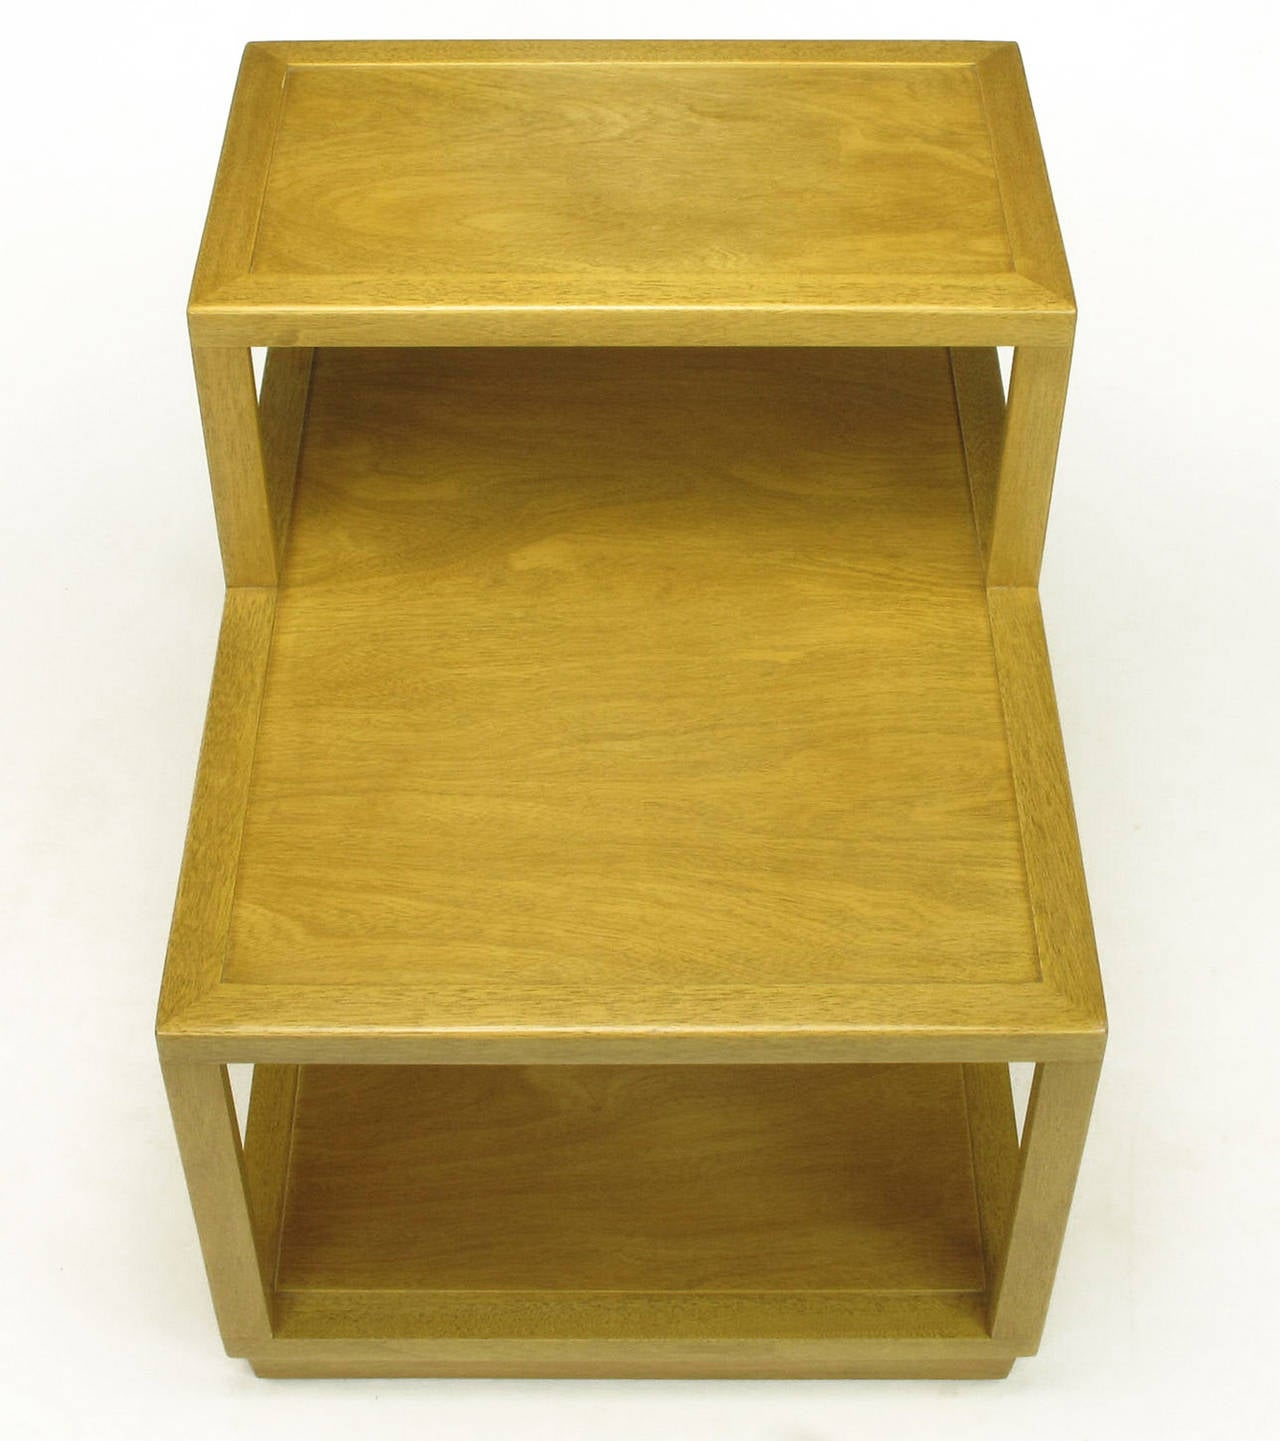 Edward Wormley Bleached Mahogany Tiered End Table for Dunbar 4